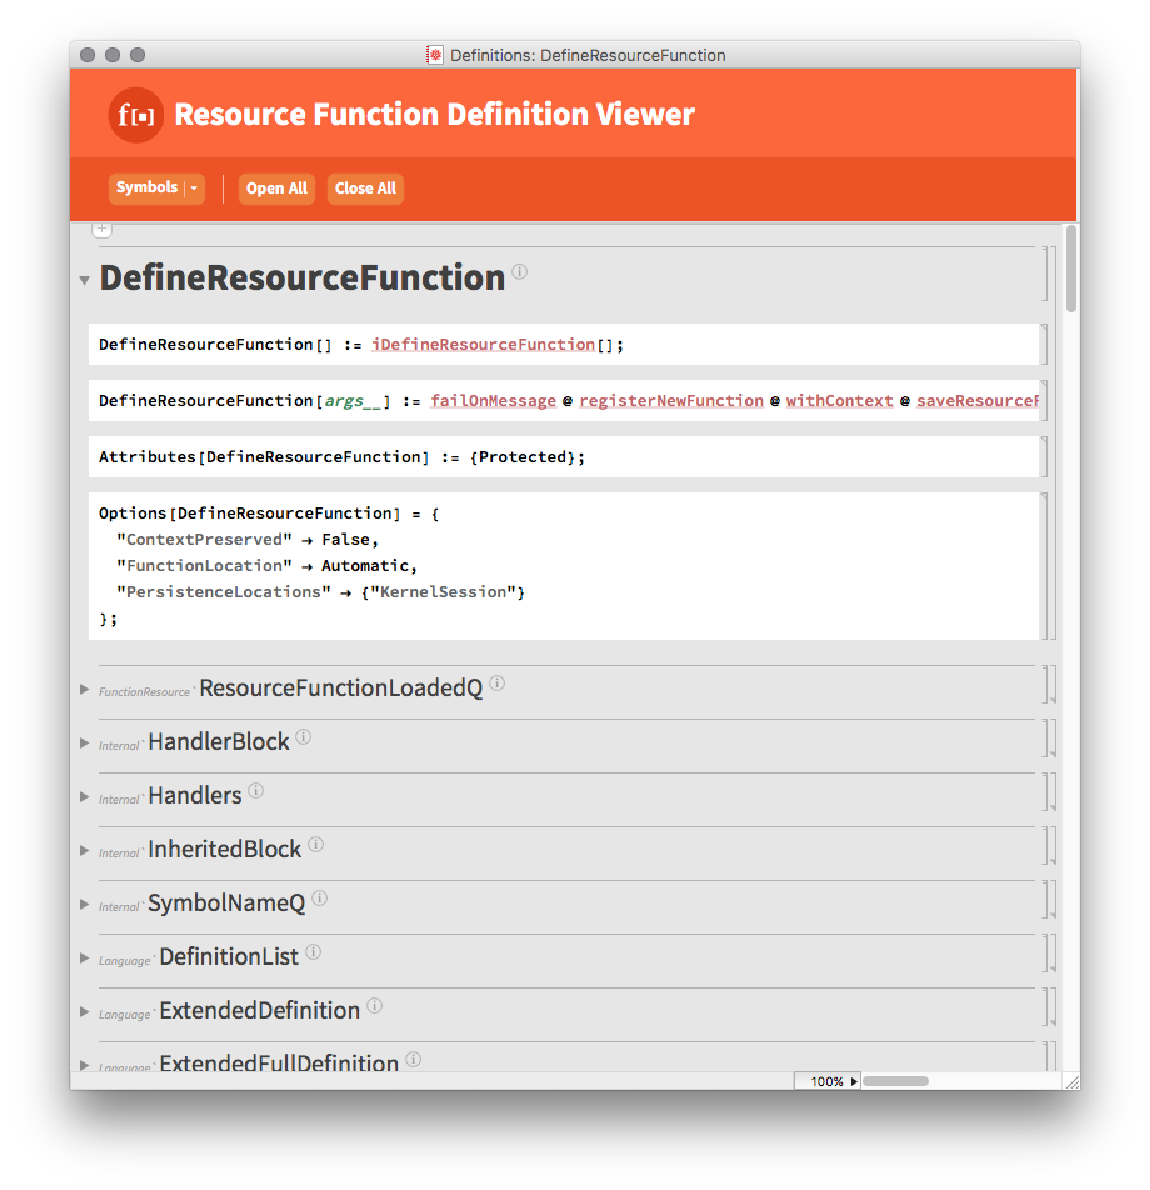 """CloudGet[""""https://www.wolframcloud.com/objects/22201d67-1e3c-4de4-a00a-1b148917ee61""""] (* Evaluate this cell to copy the example input from a cloud object *)"""